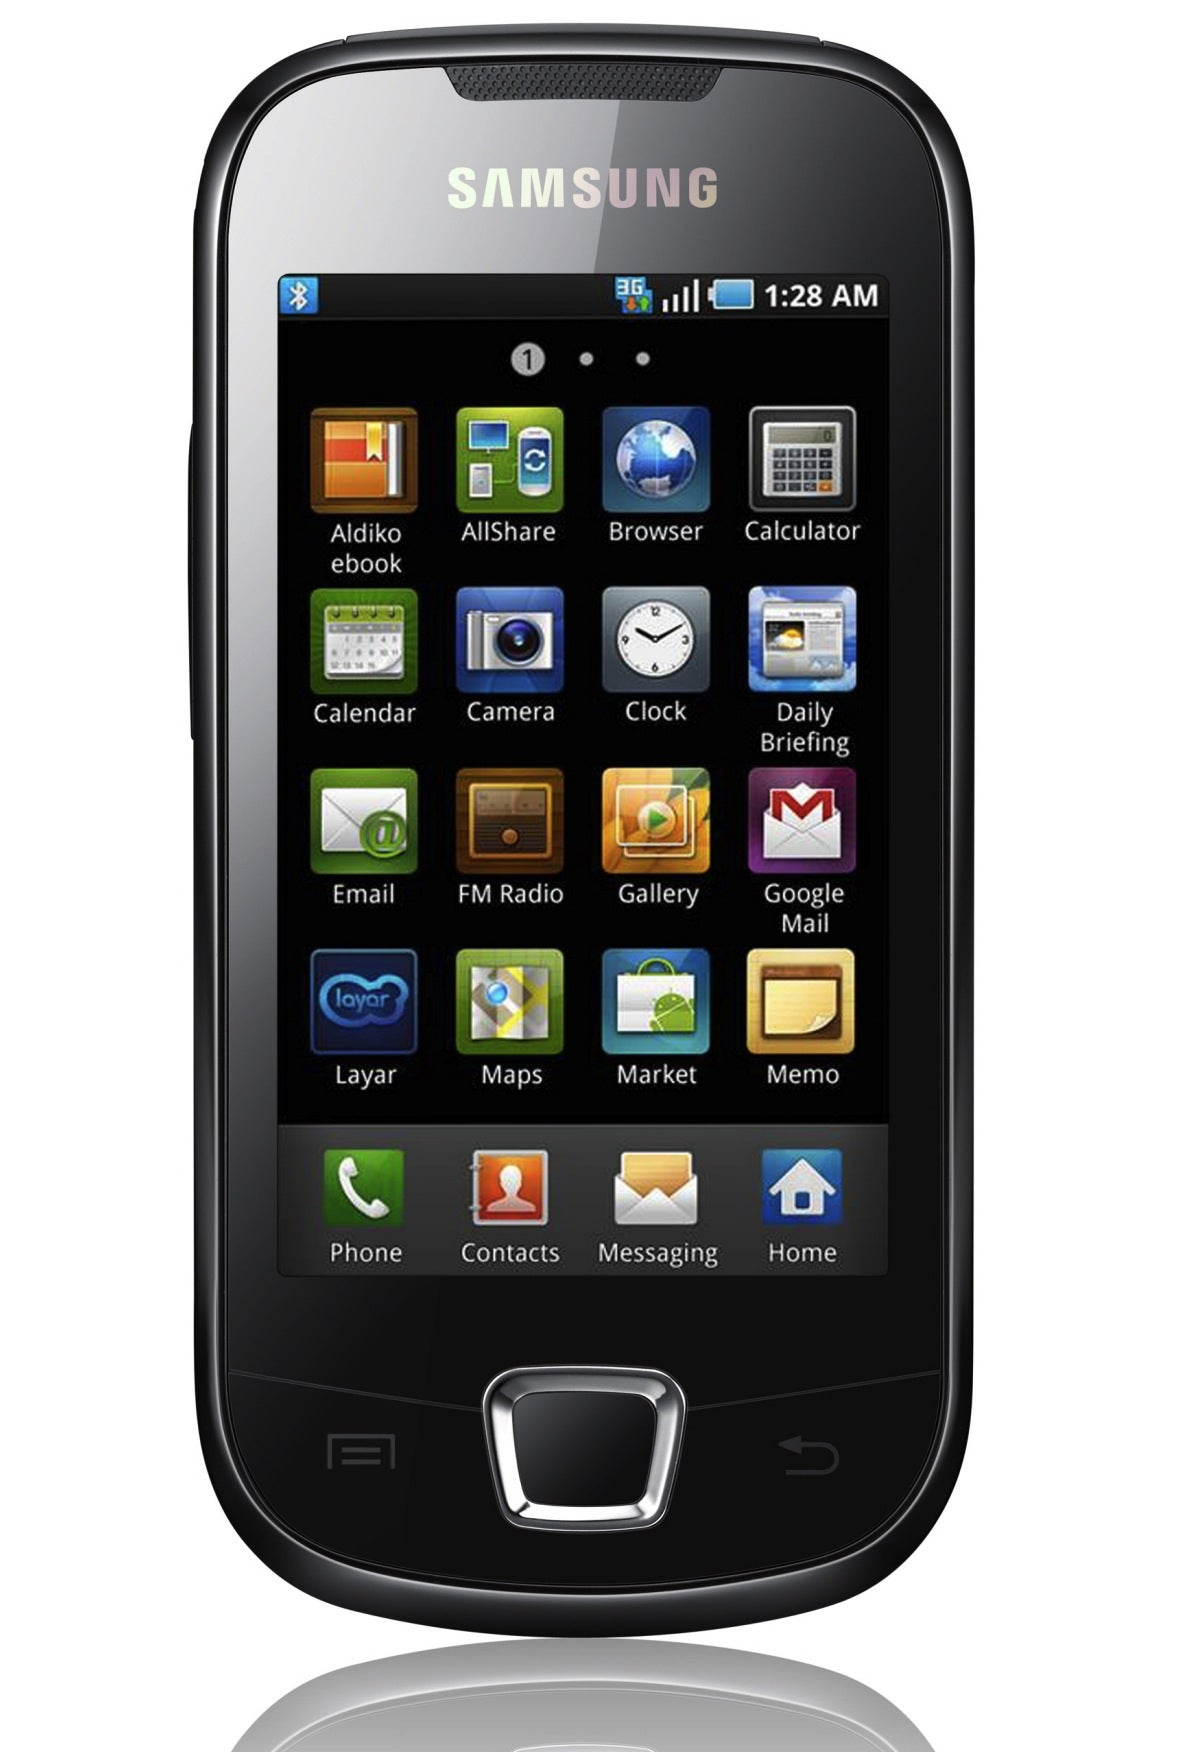 Samsung Galaxy 3 Apollo I5800 Unlocked GSM Android Cell Phone